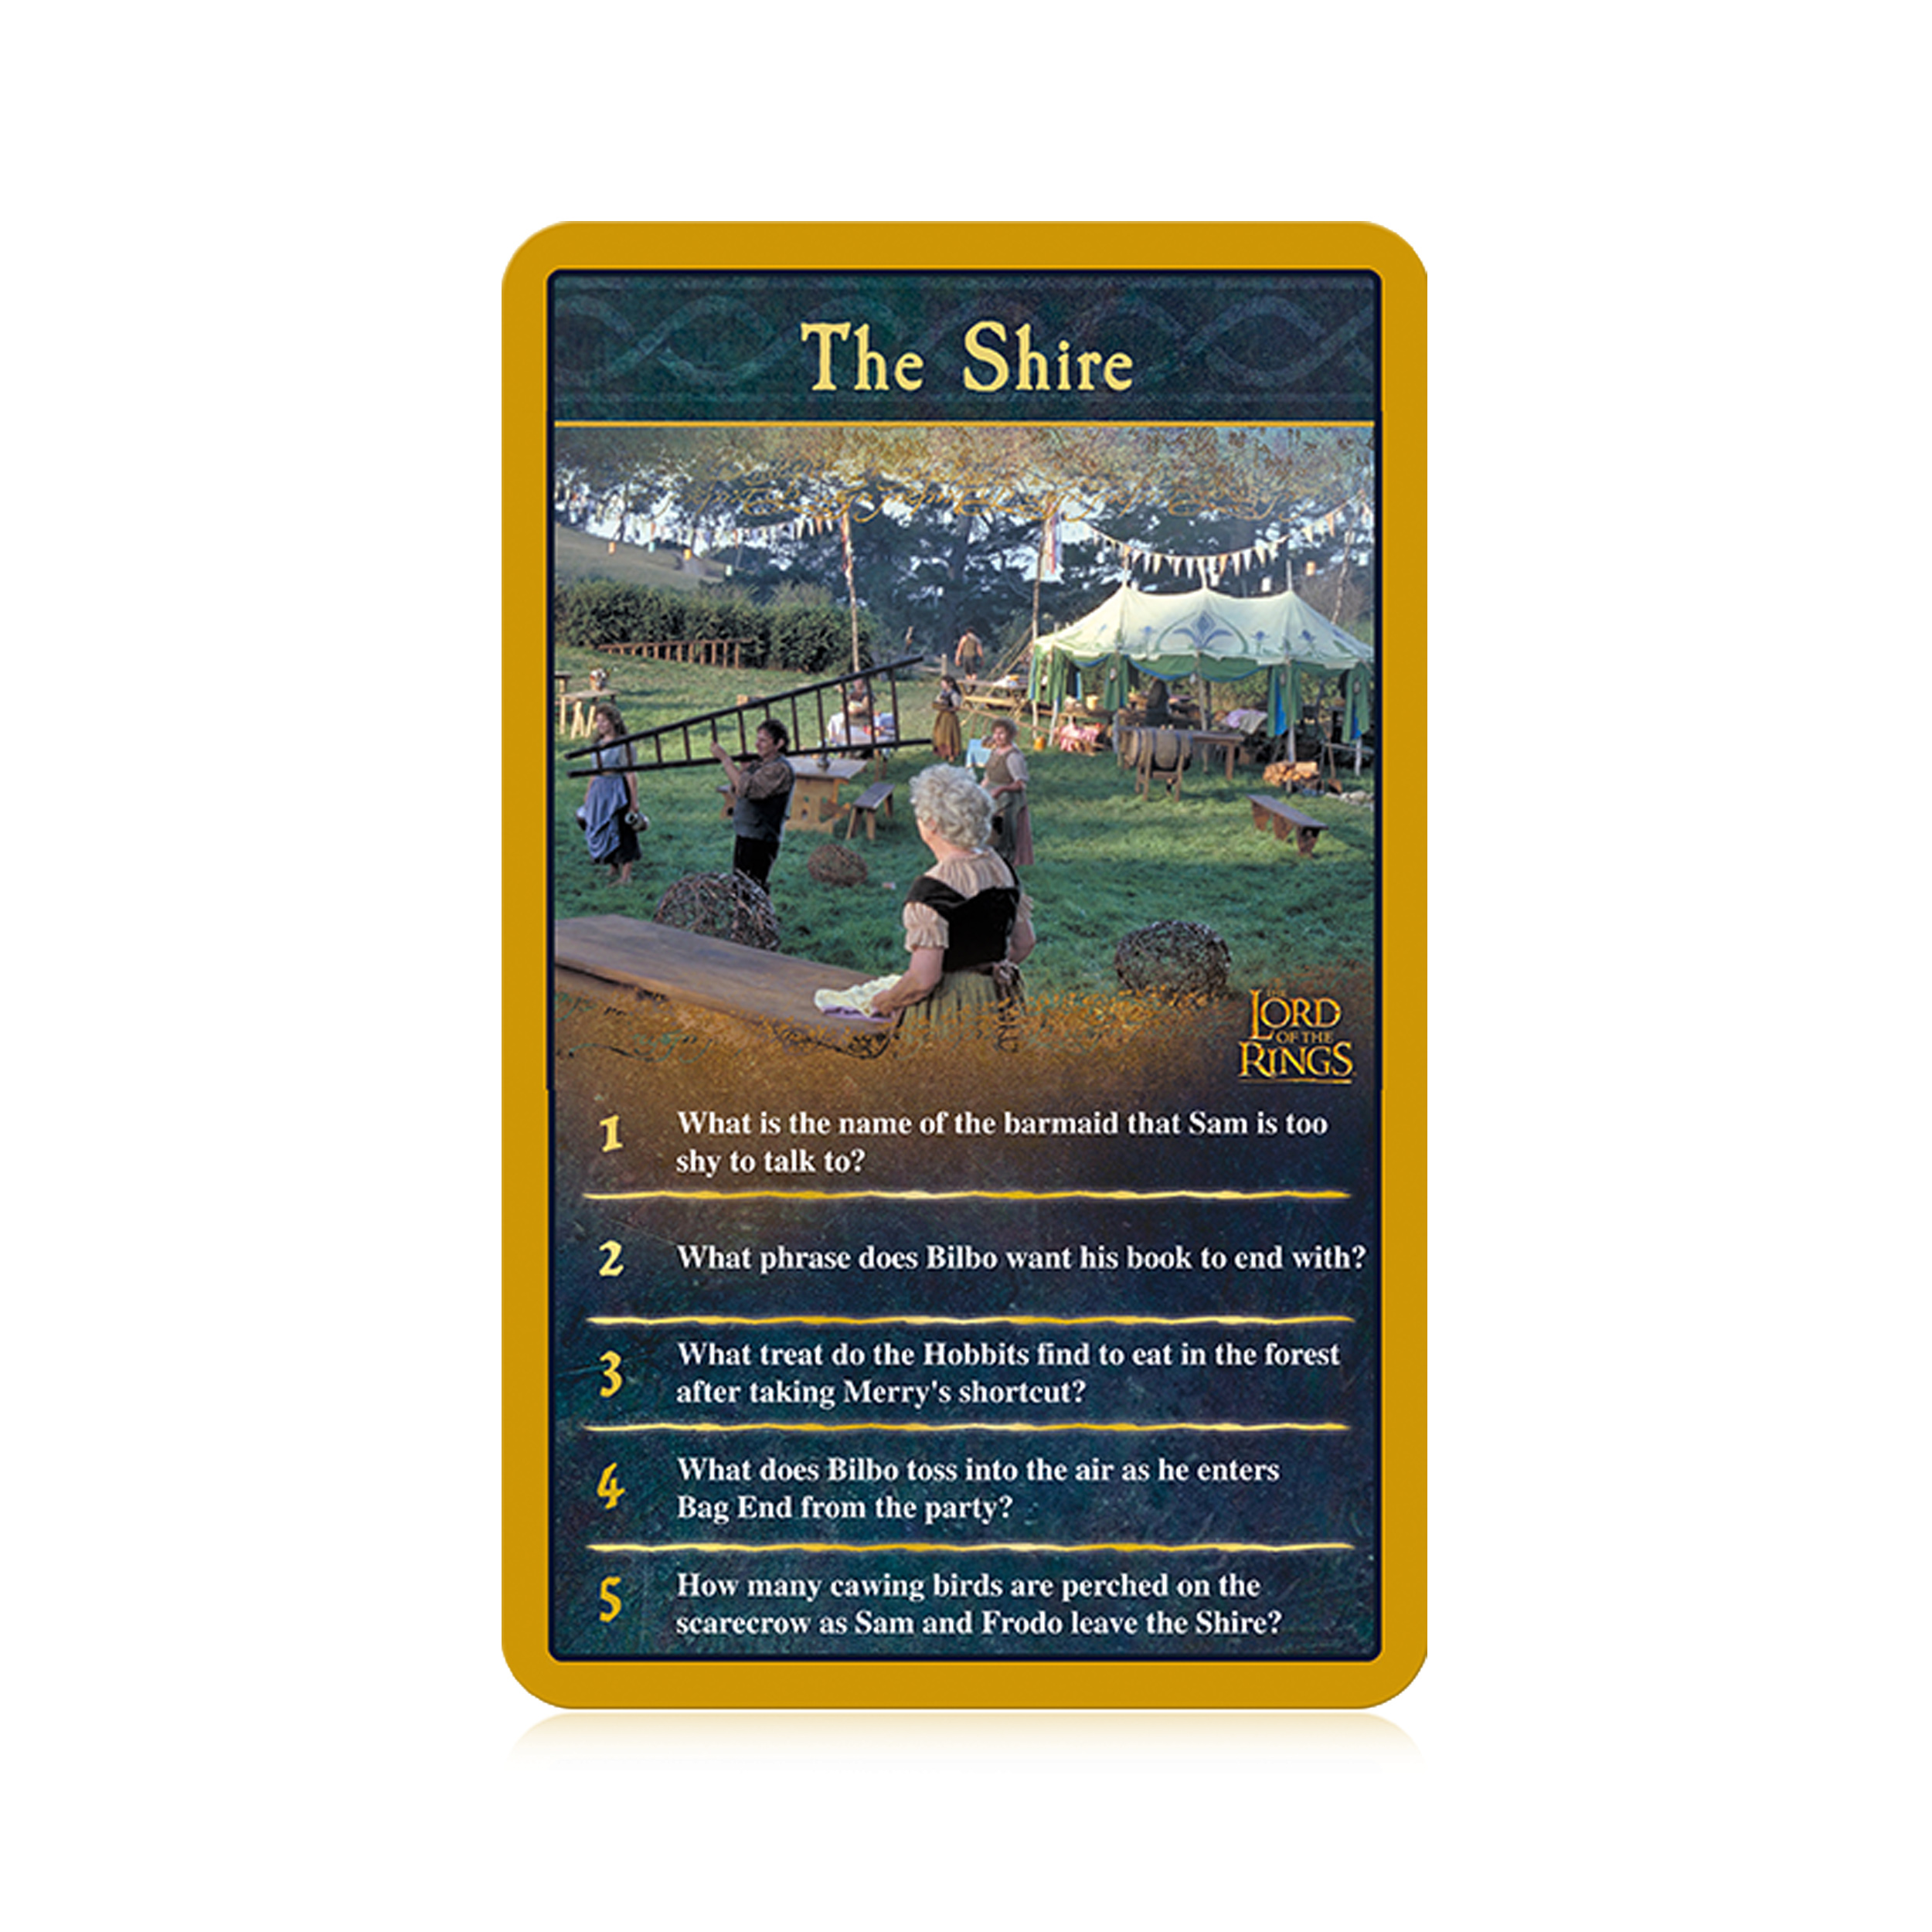 The Lord of the Rings Top Trumps Quiz